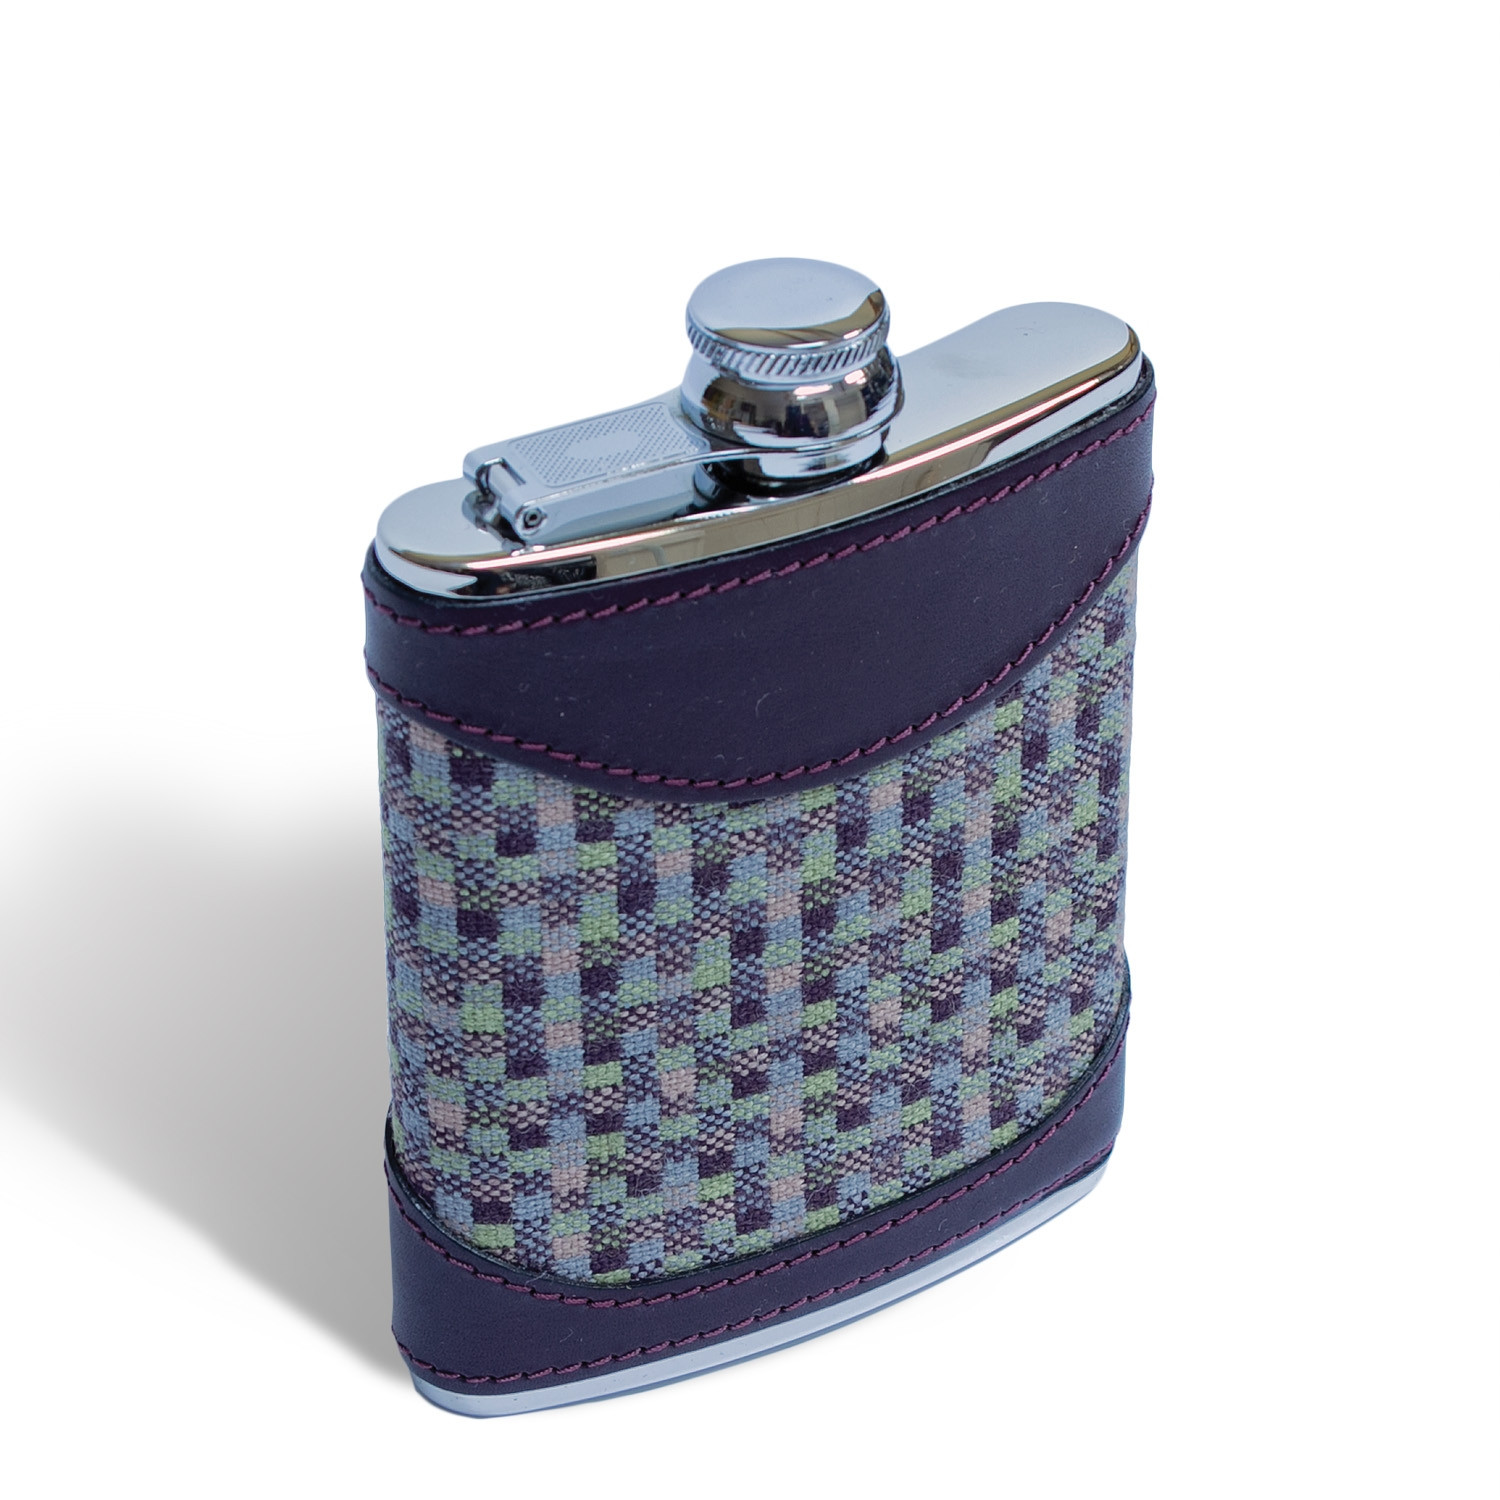 Speckle earth 6oz hip flask